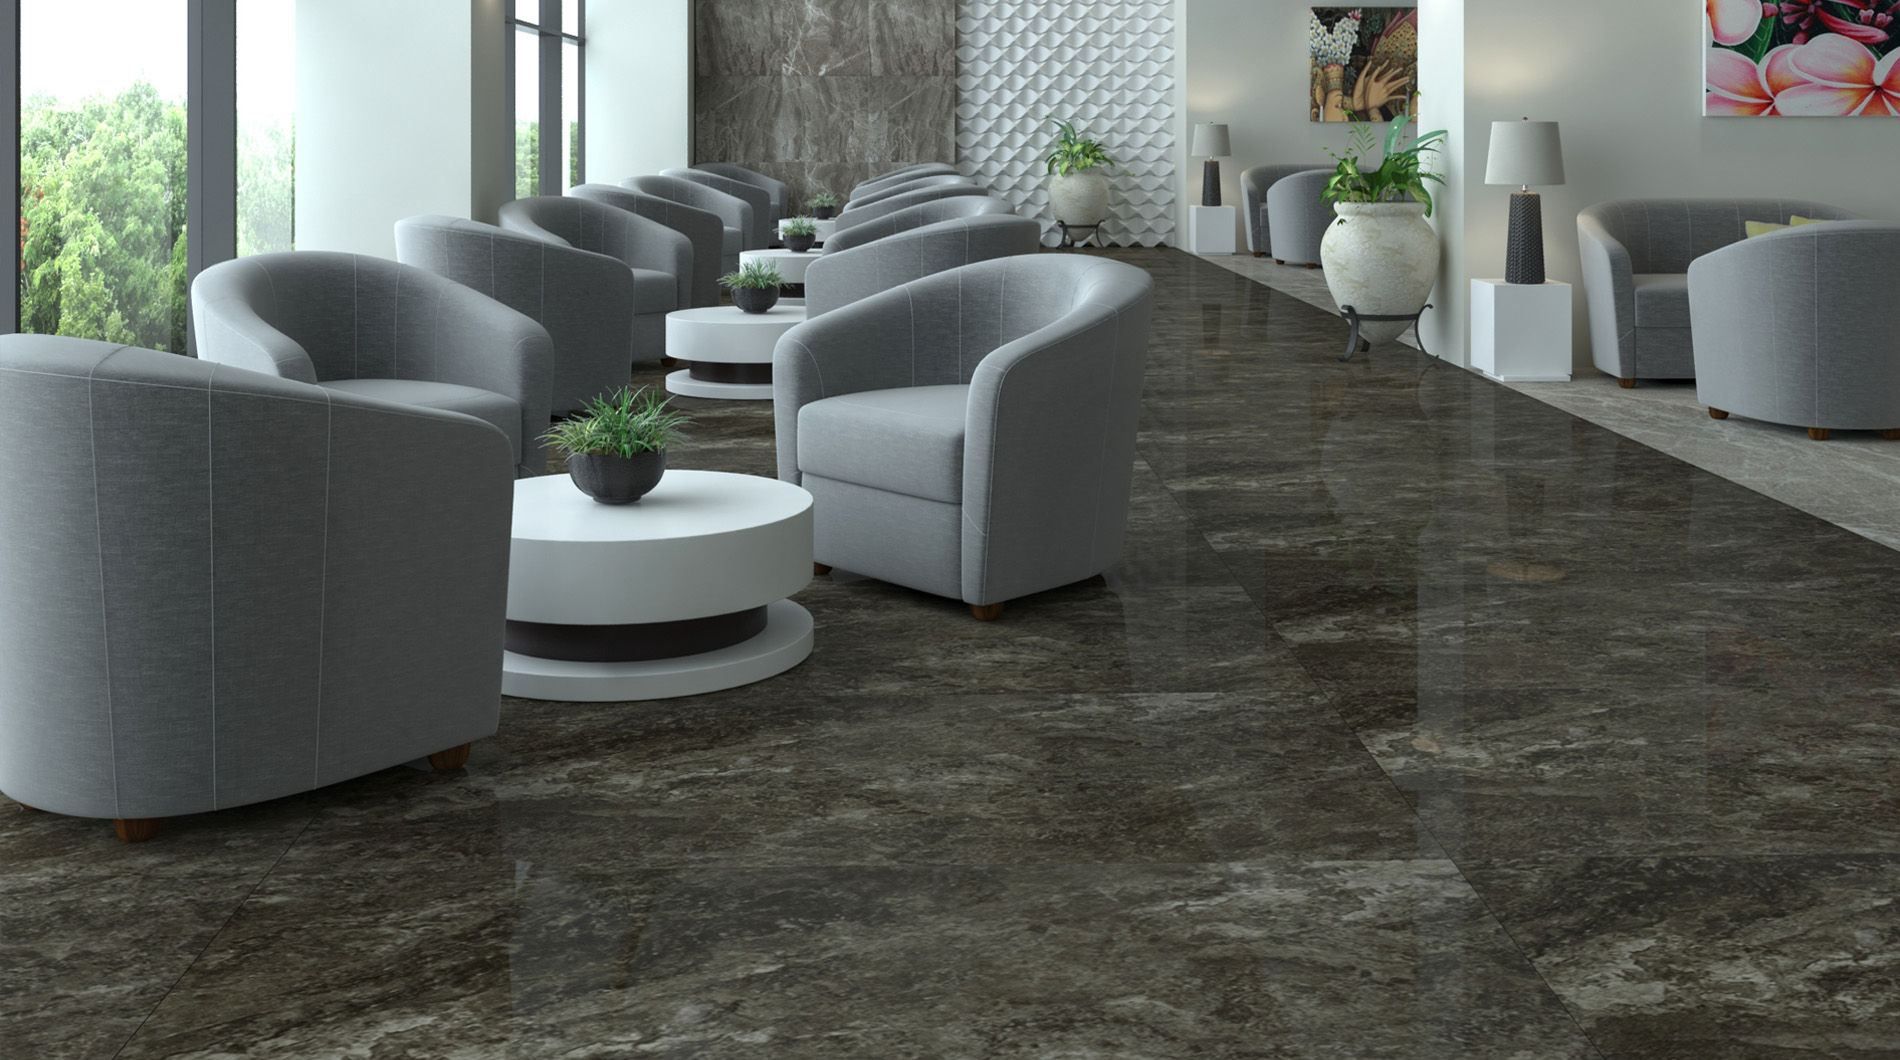 Home - HUGO Granite Tile - Metro Color - Stylist - High Quality ...